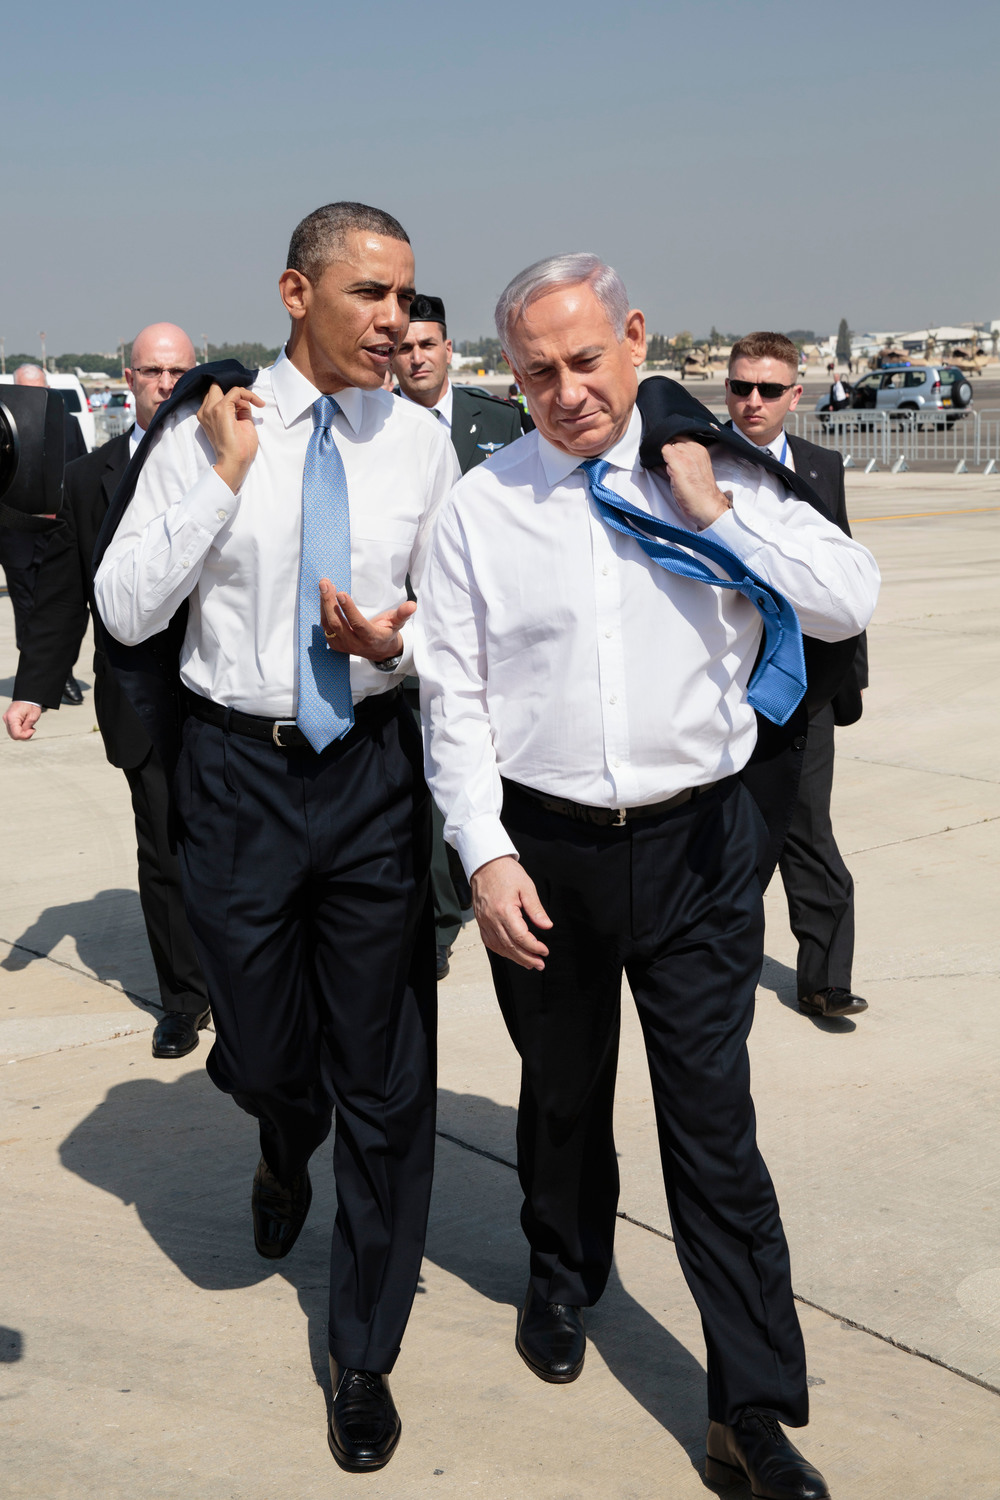 Click photo to download. Caption: U.S. President Barack Obama (left) speaks with Israeli Prime Minister Benjamin Netanyahu as they walk across the tarmac at Ben Gurion International Airport in Tel Aviv on March 20, 2013. Credit: Pete Souza/White House.